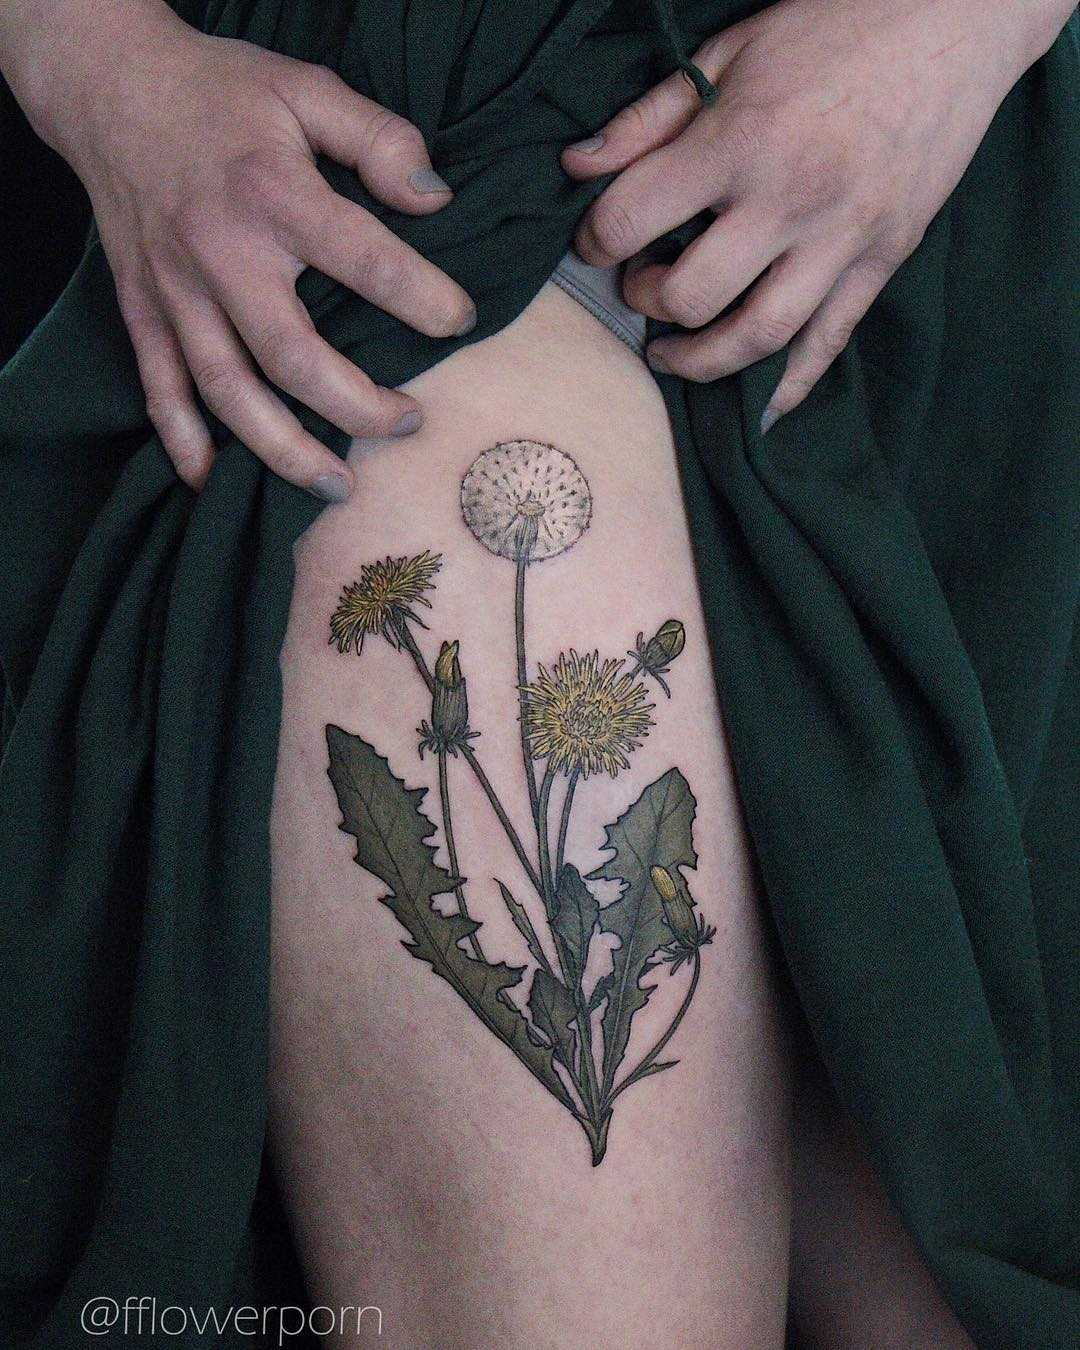 Dandelions tattoo on the thigh